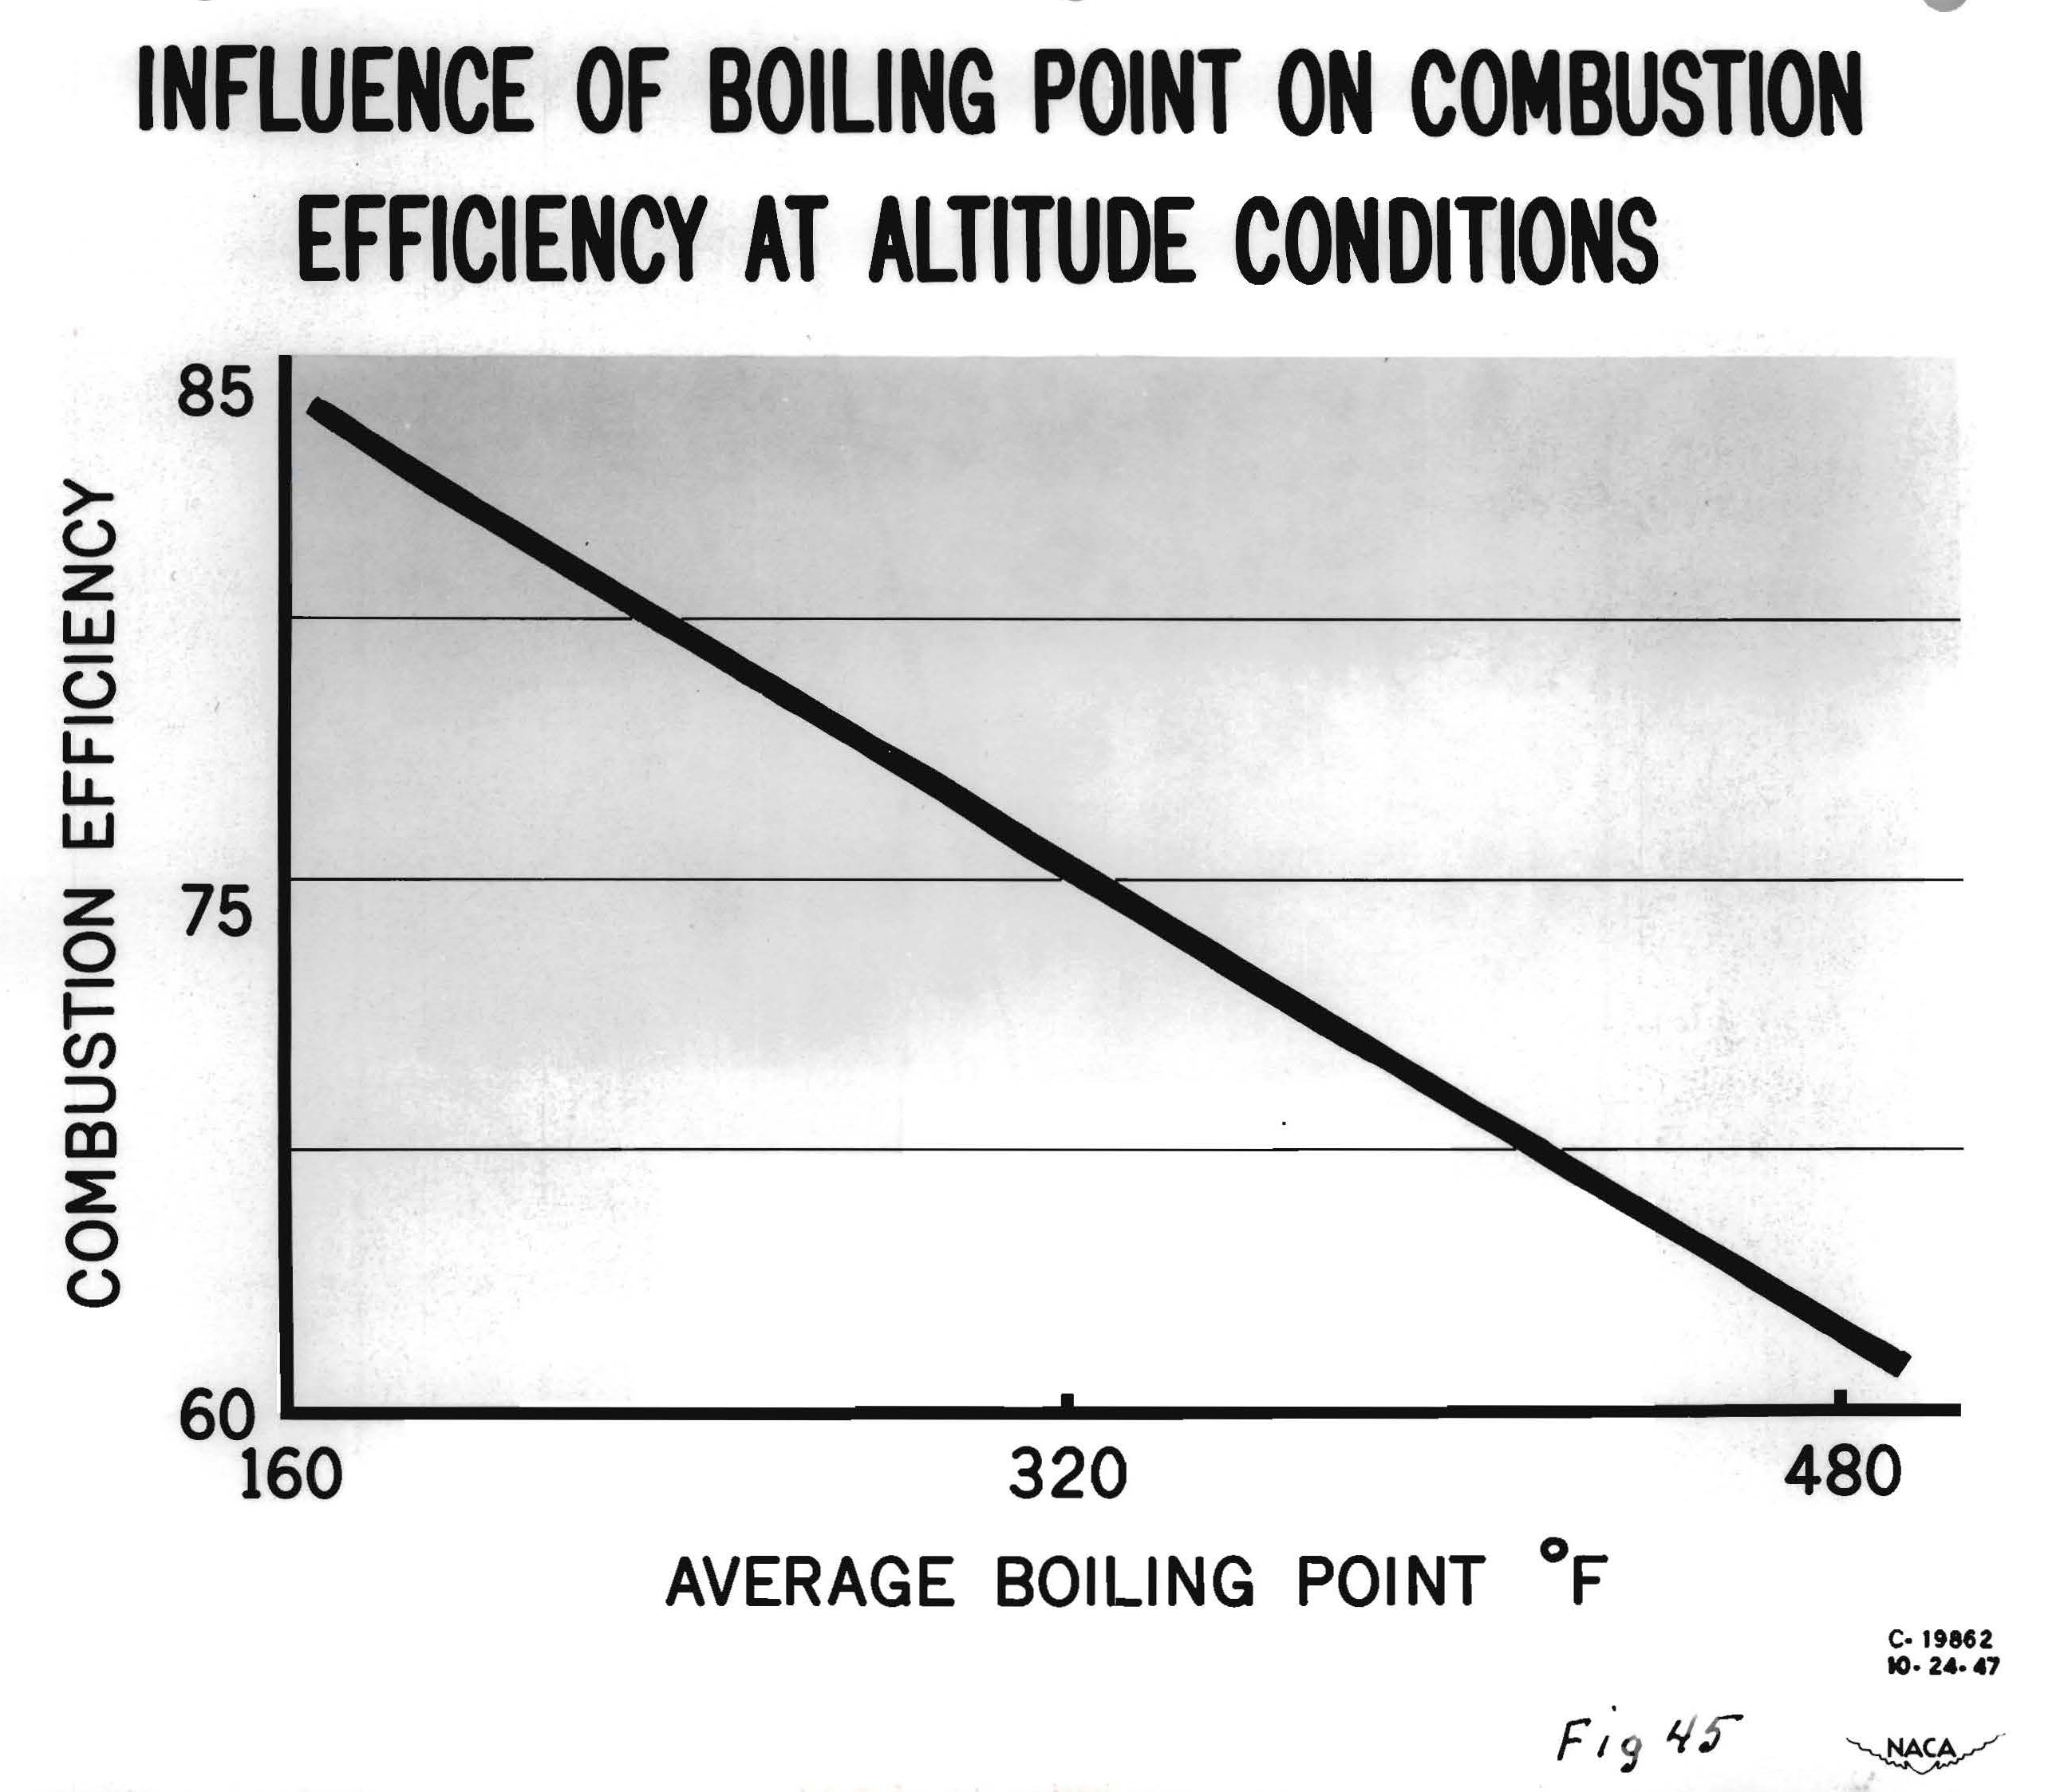 Early Jet Engines Nasa Glenn Research Center First Combustion Engine Diagram Demonstrating The Influence Of Boiling Point On Efficiency At Altitude Conditions